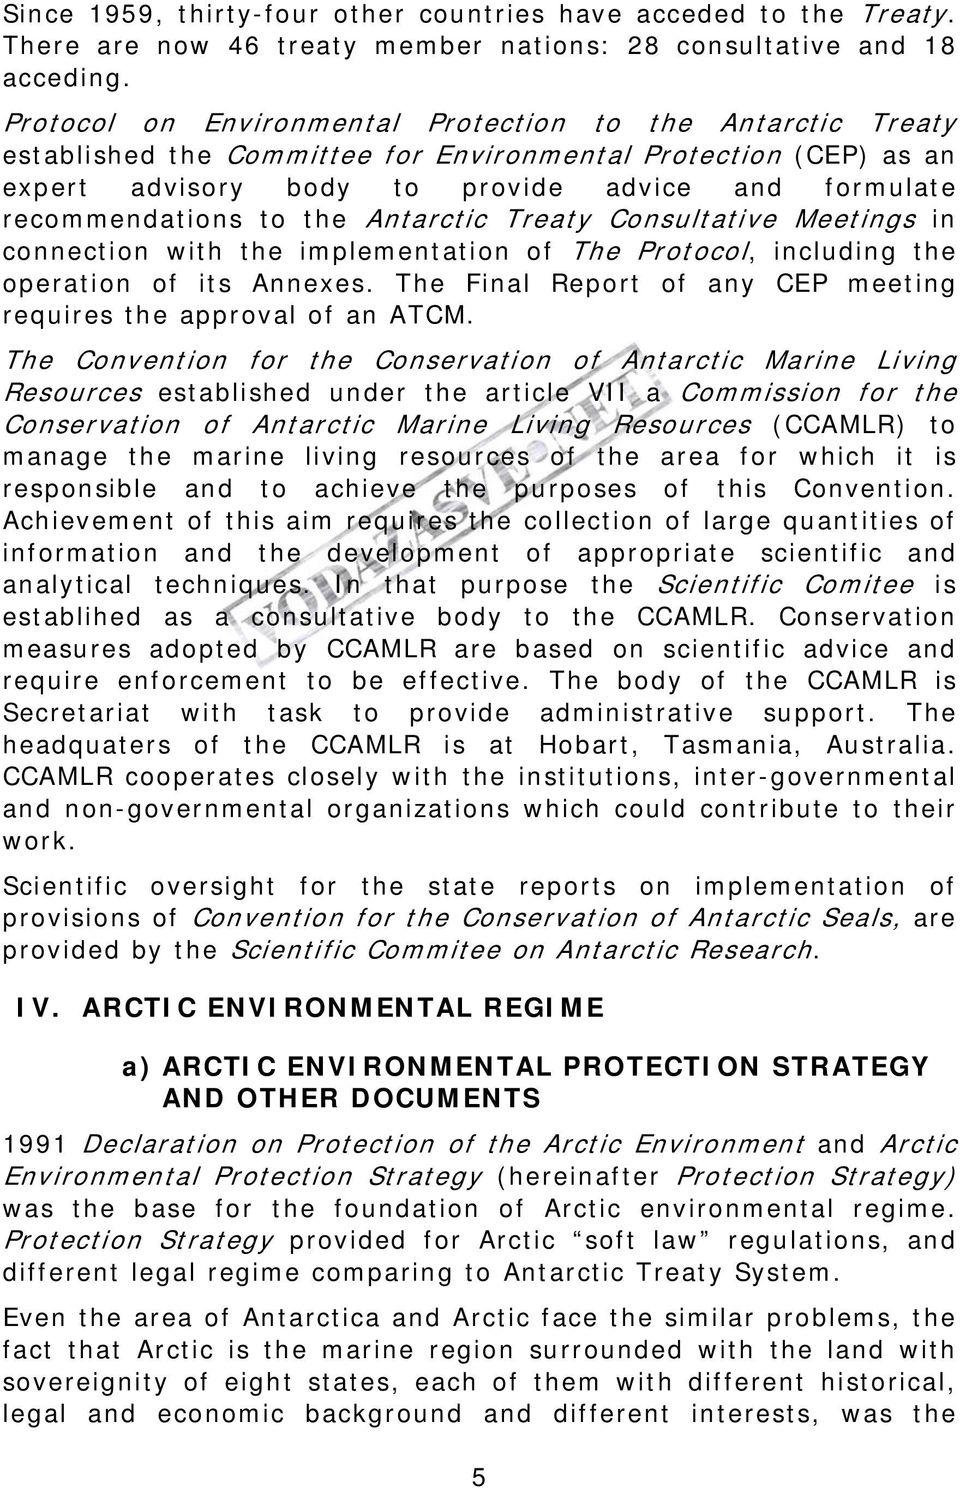 the Antarctic Treaty Consultative Meetings in connection with the implementation of The Protocol, including the operation of its Annexes.